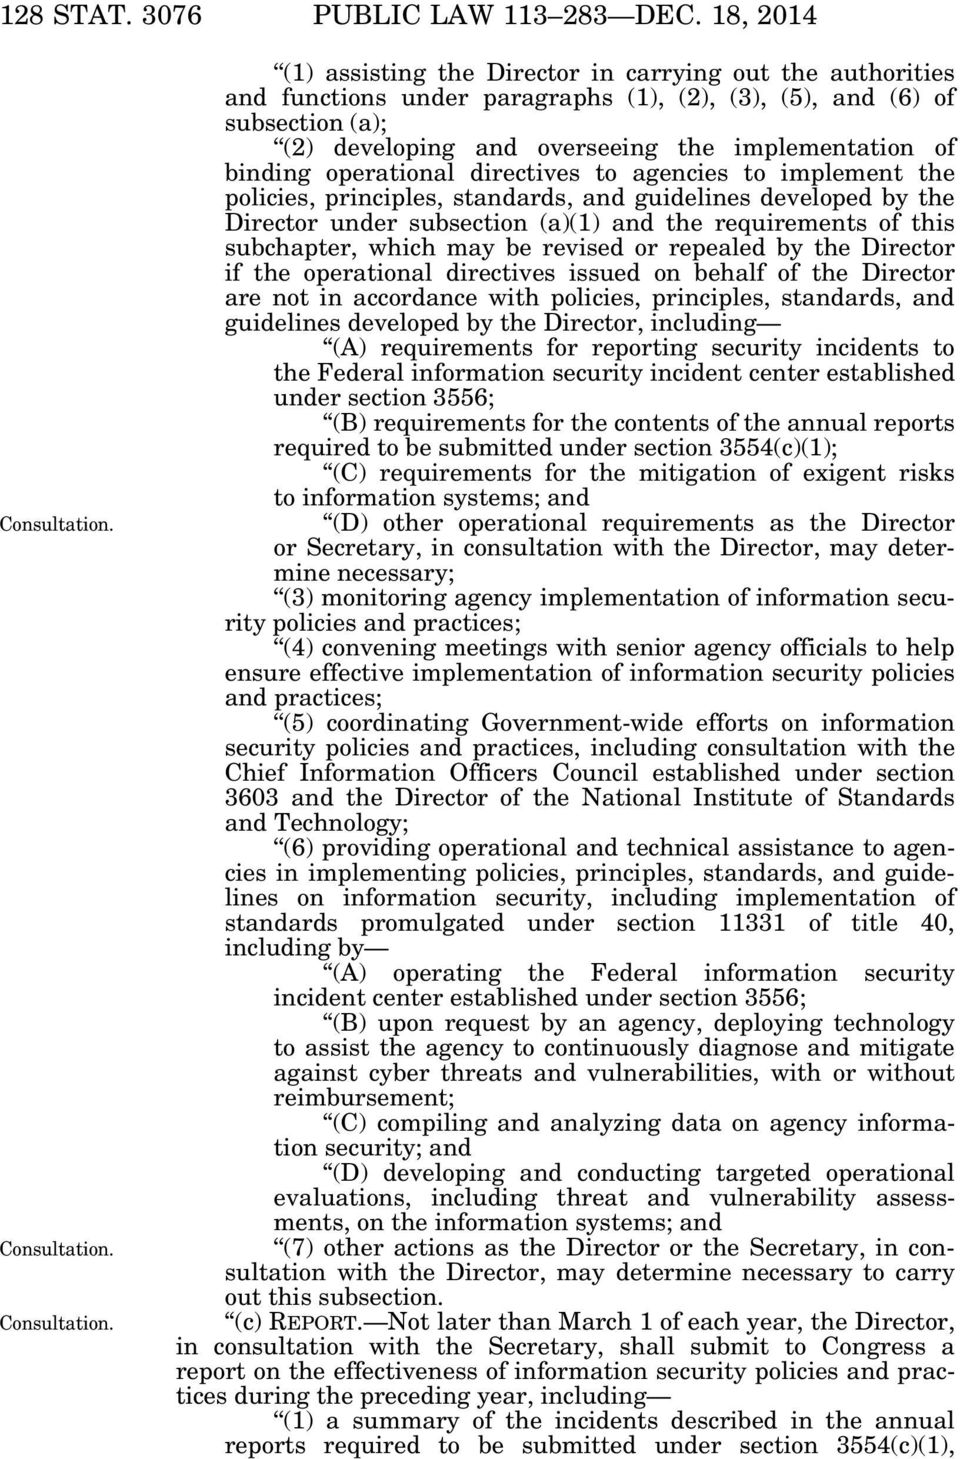 operational directives to agencies to implement the policies, principles, stards, guidelines developed by the Director under subsection (a)(1) the requirements of this subchapter, which may be